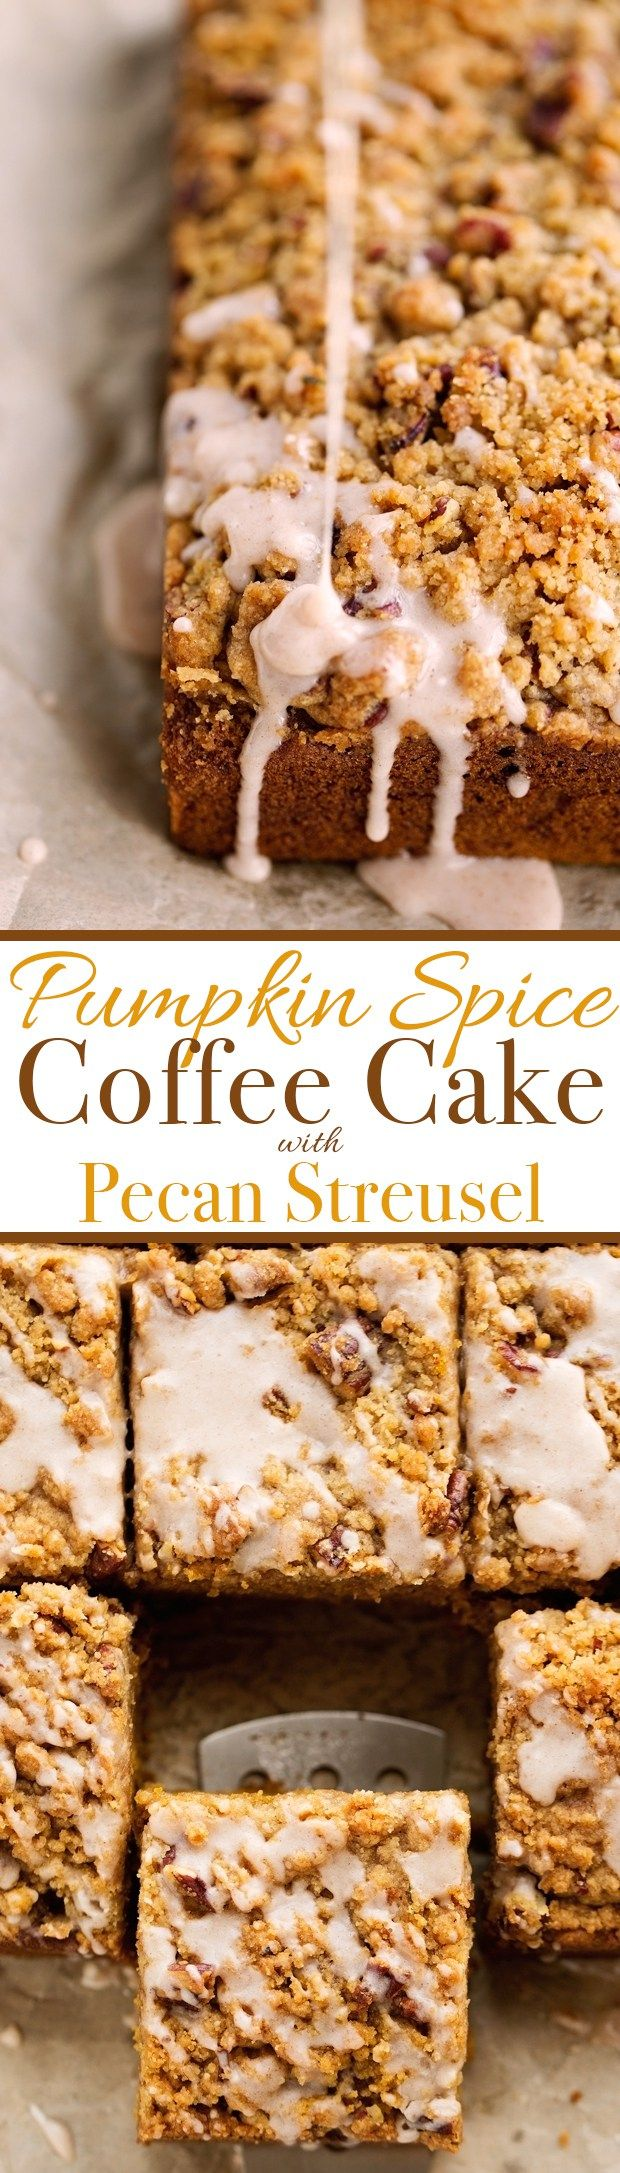 Pumpkin Coffee Cake with Pecan Streusel Topping - Loaded with sweet pumpkin spice, lightly sweeter but so moist! #pumpkin #coffeecake #pumpkincake | Littlespicejar.com